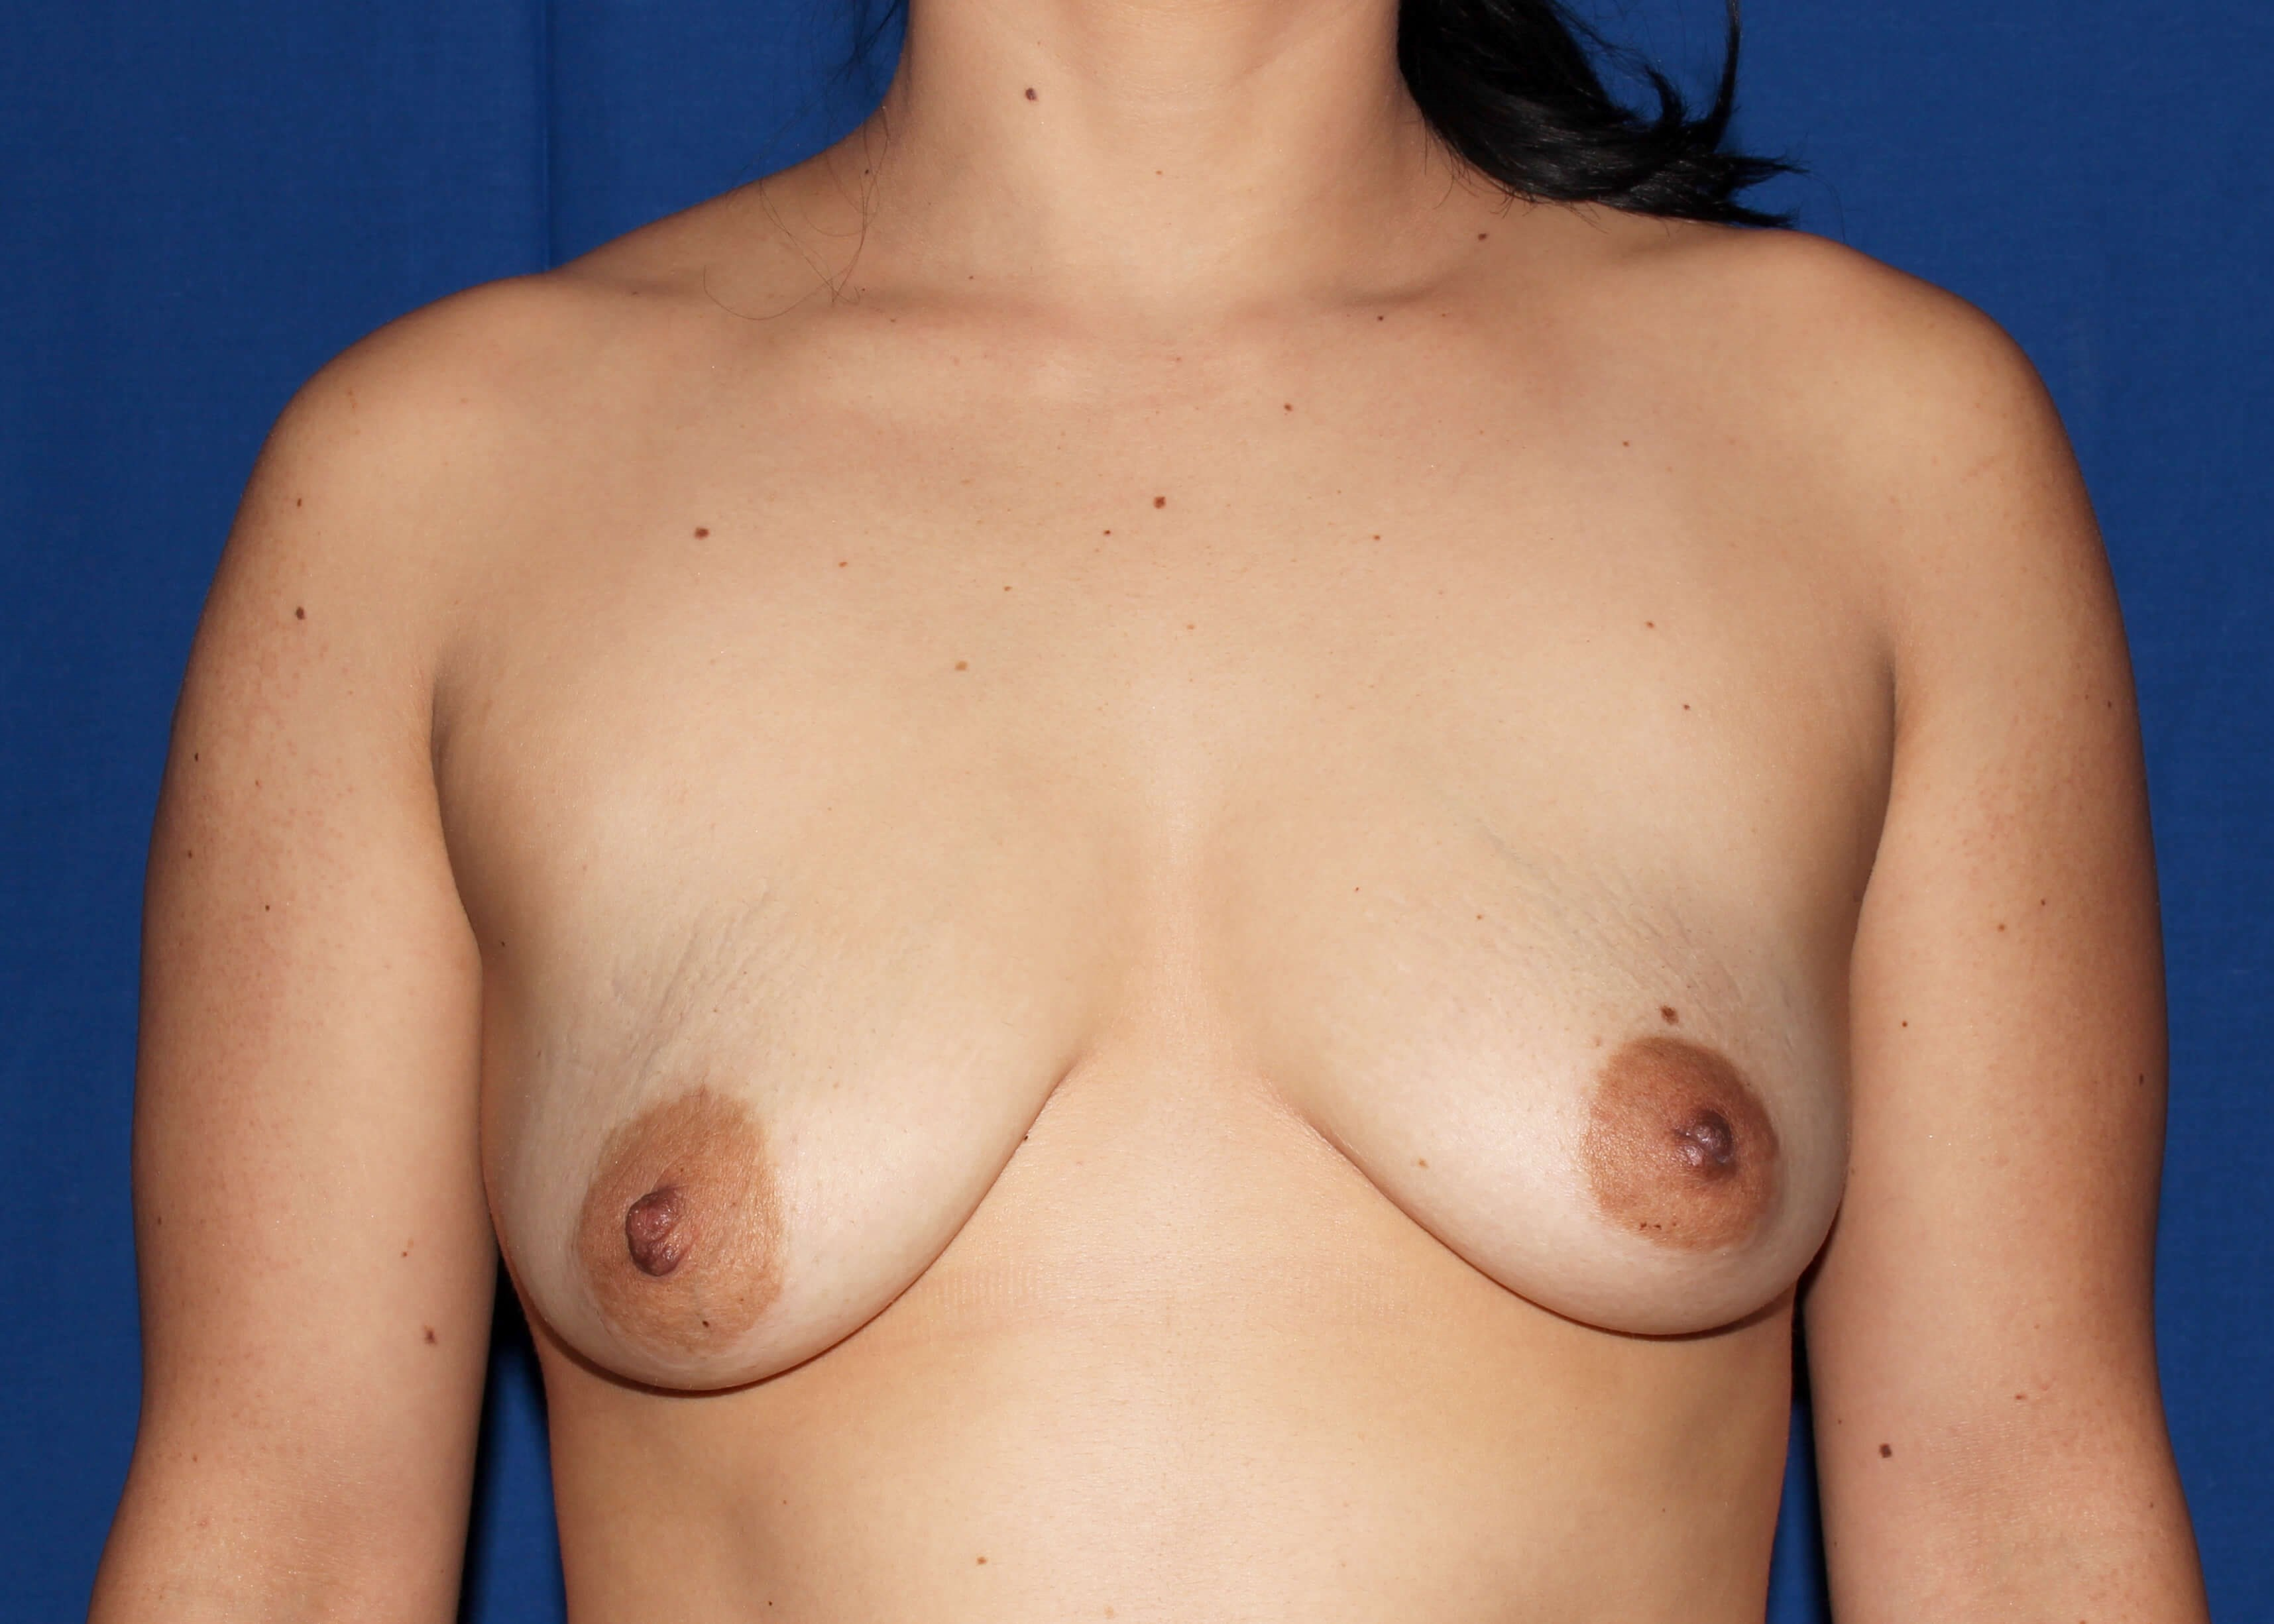 before breast augmentation - Breast Augmentation